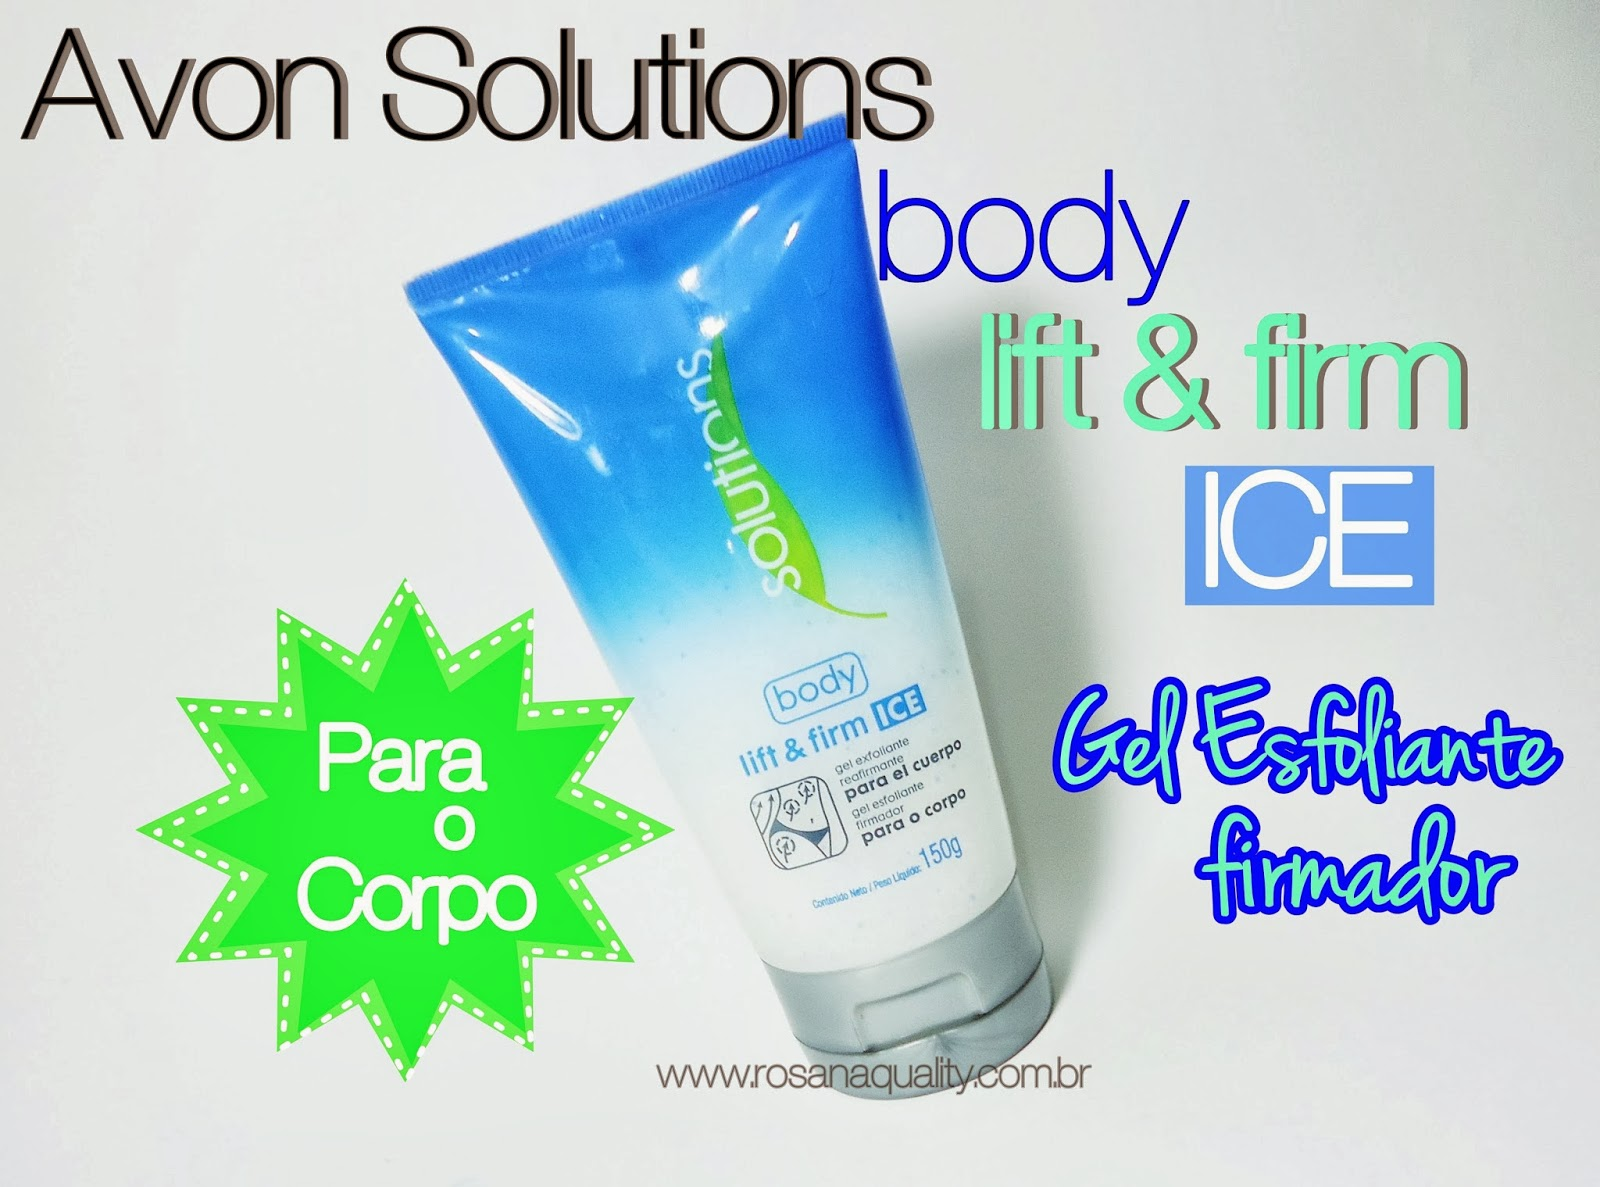 Body Lift & Fir Ice Avon Solutions